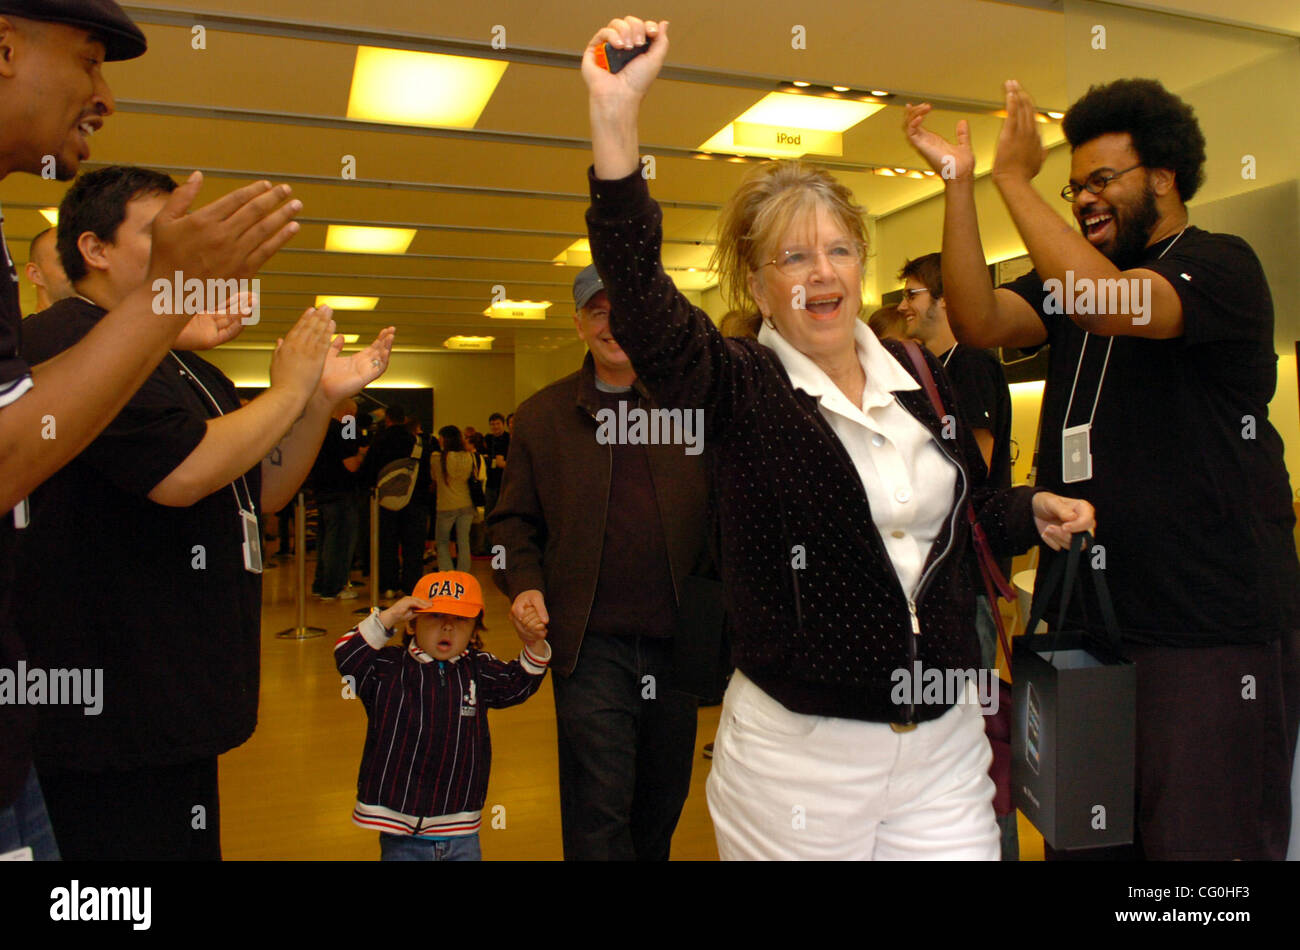 Barbara Allendorf of Berkeley celebrates after buying an iPhone at the Apple Store in Emeryville on Friday June - Stock Image